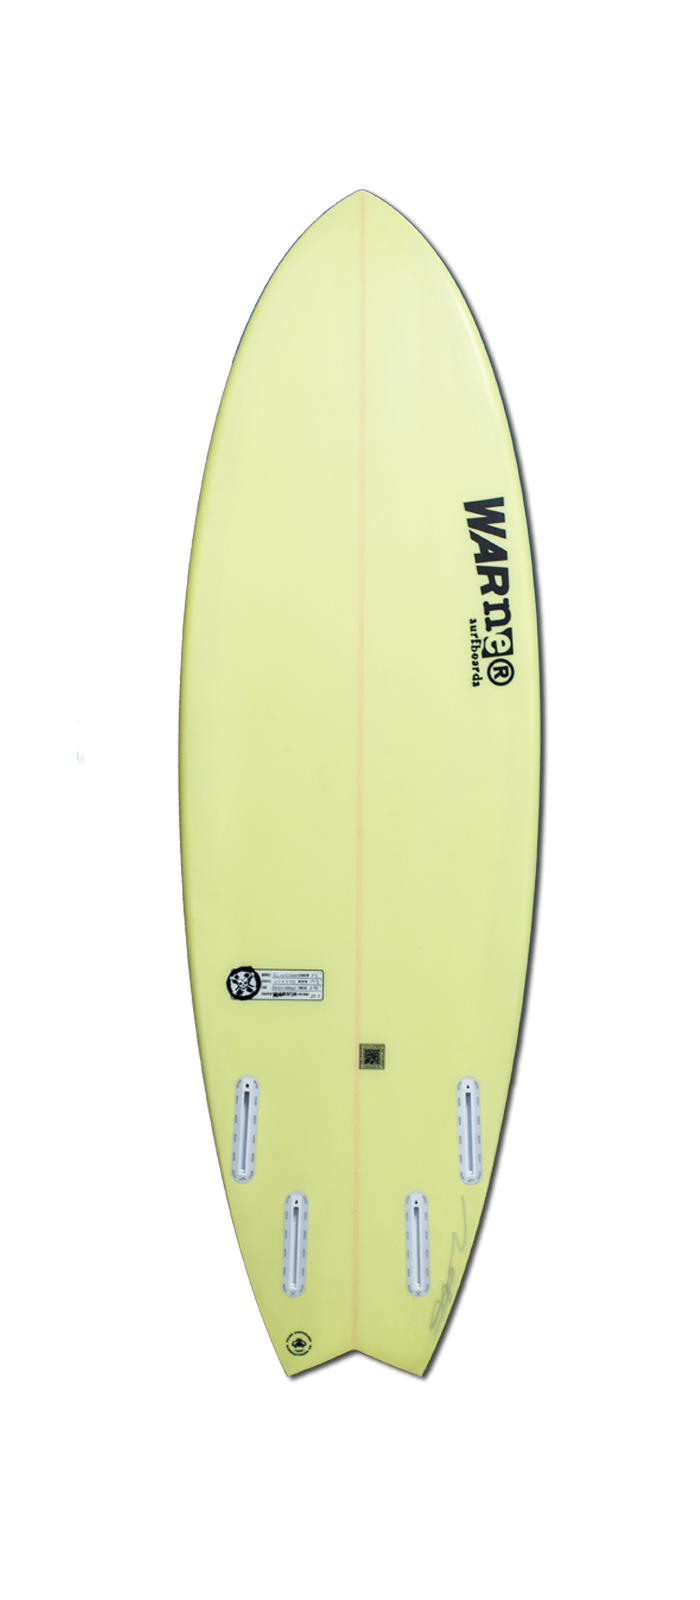 SLINGSHOT surfboard model bottom